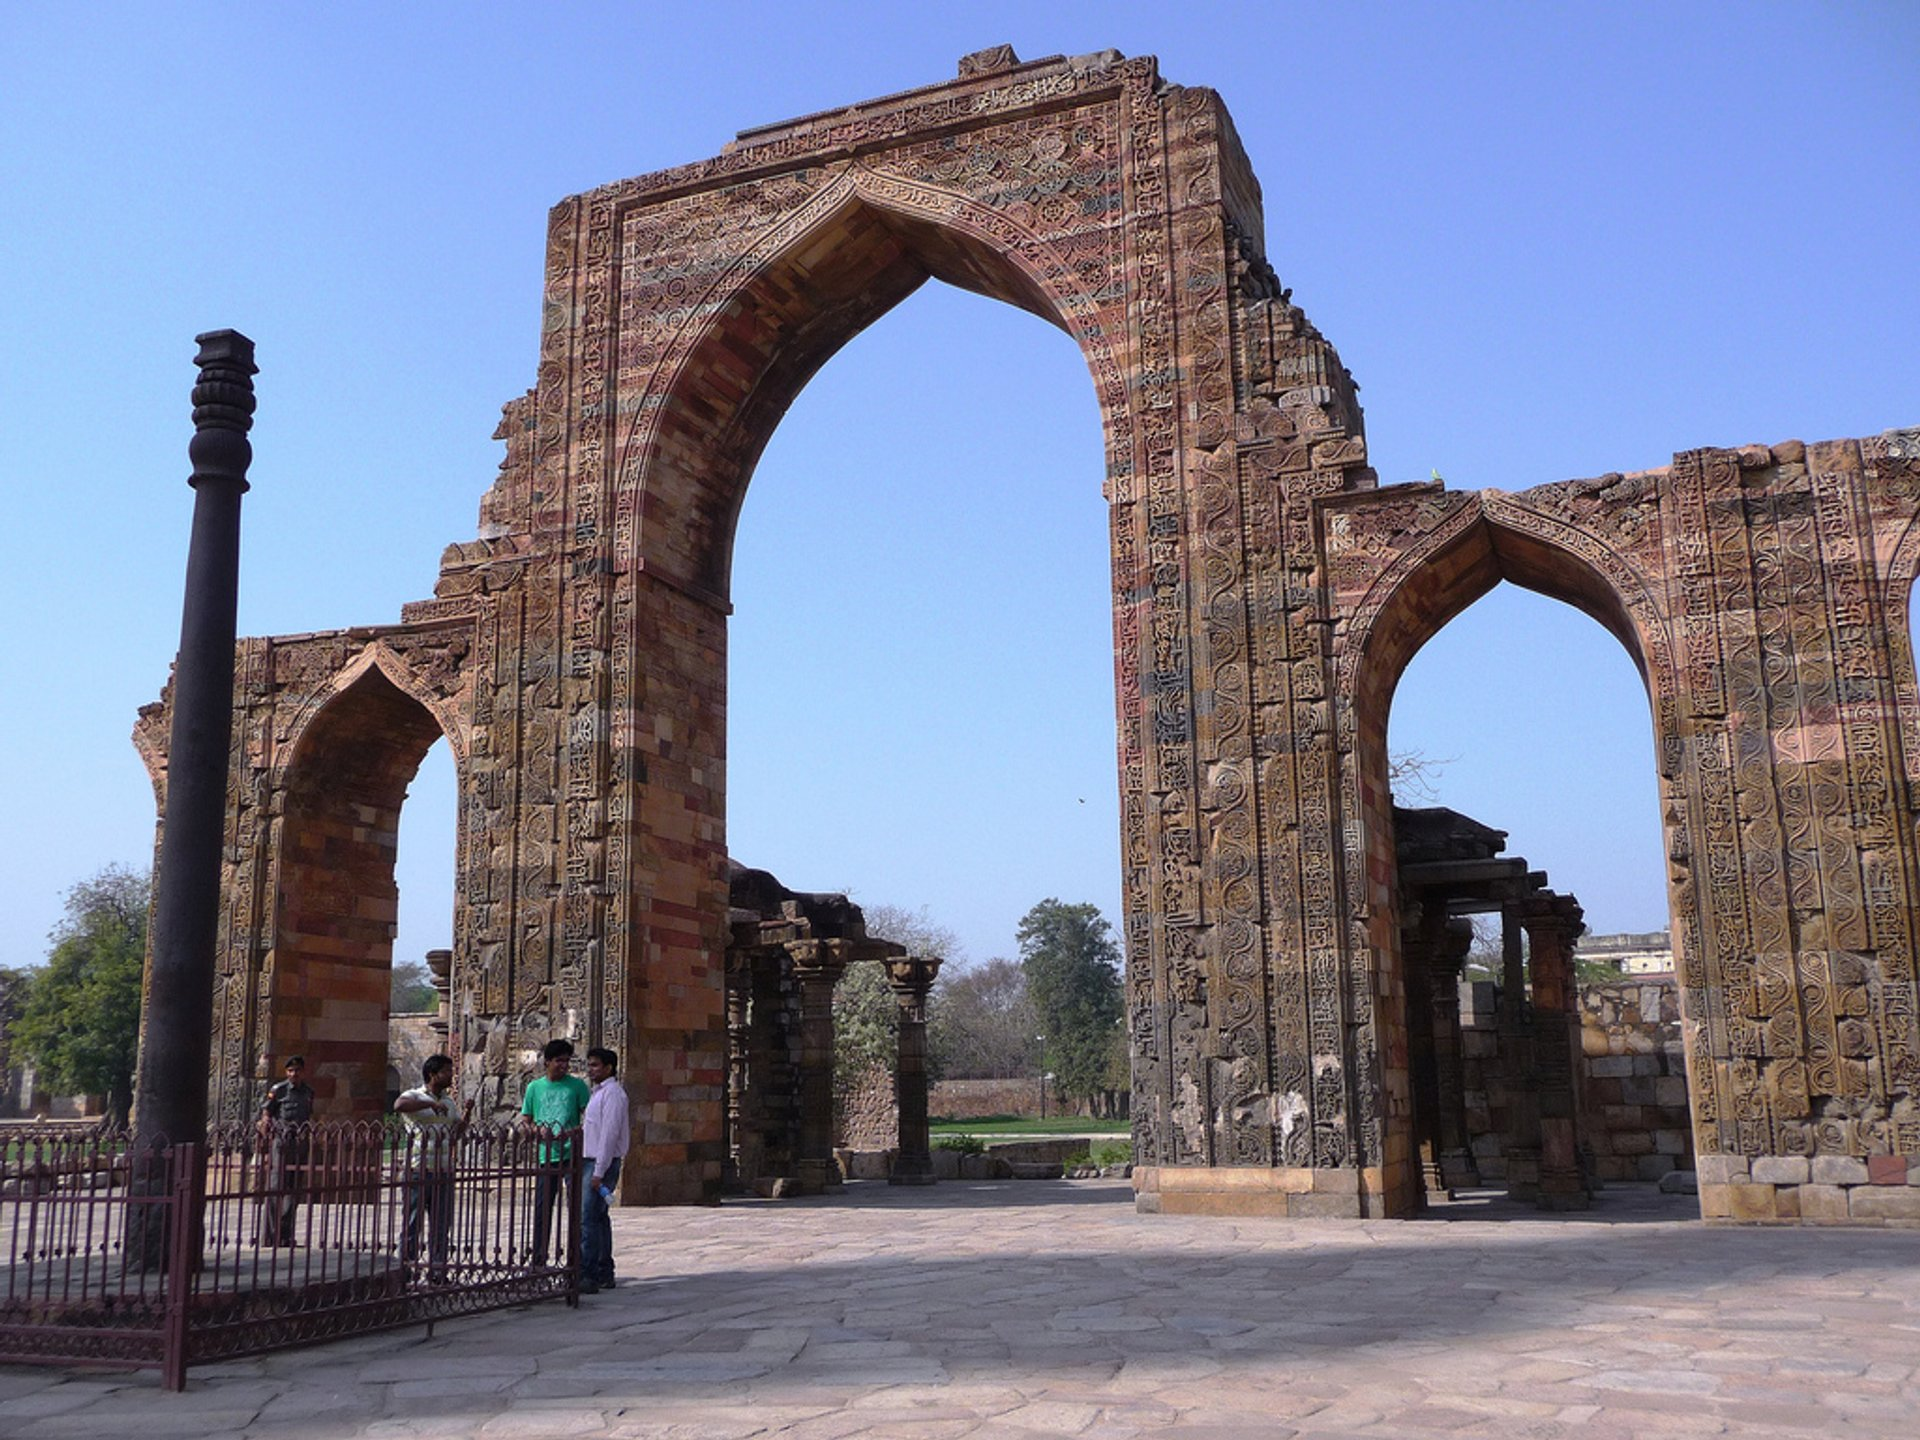 Iron Pillar of Delhi in India - Best Season 2020